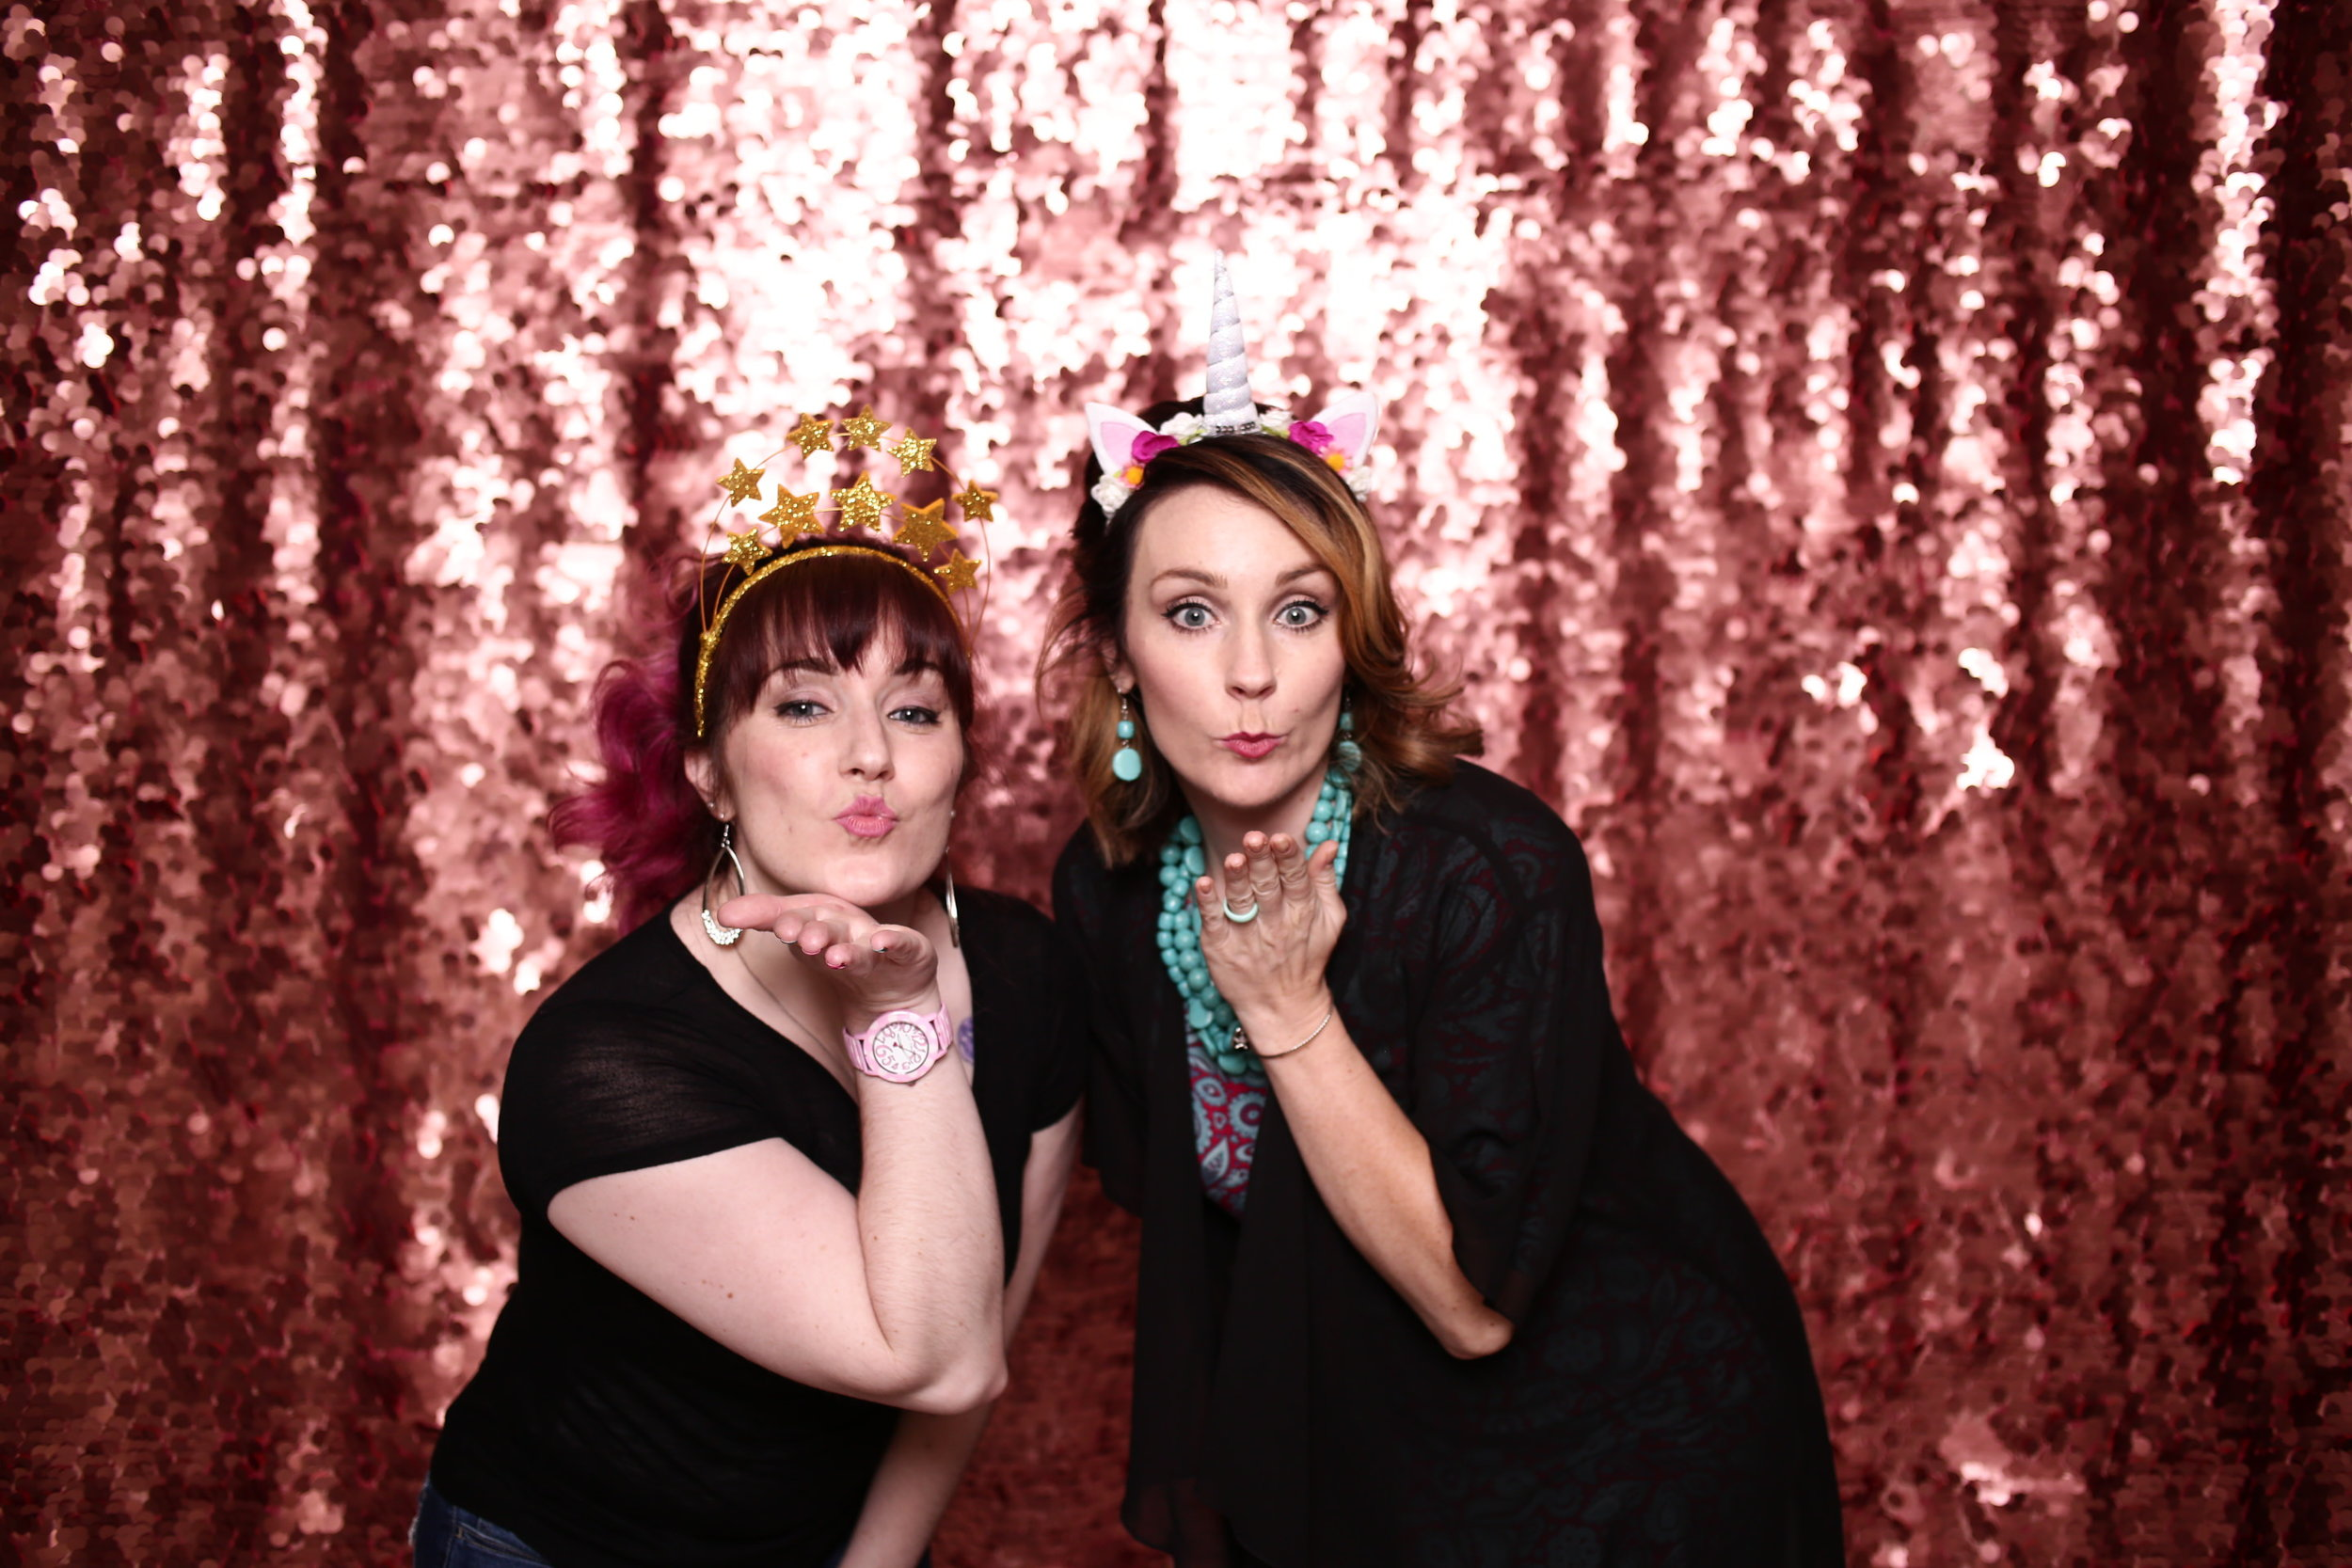 Wyoming Studio Photobooth Cheyenne Laramie Photobooth Rental Photo booth wedding party event colorado fort collins best pretty rose gold backdrop sequin large pink2.jpg